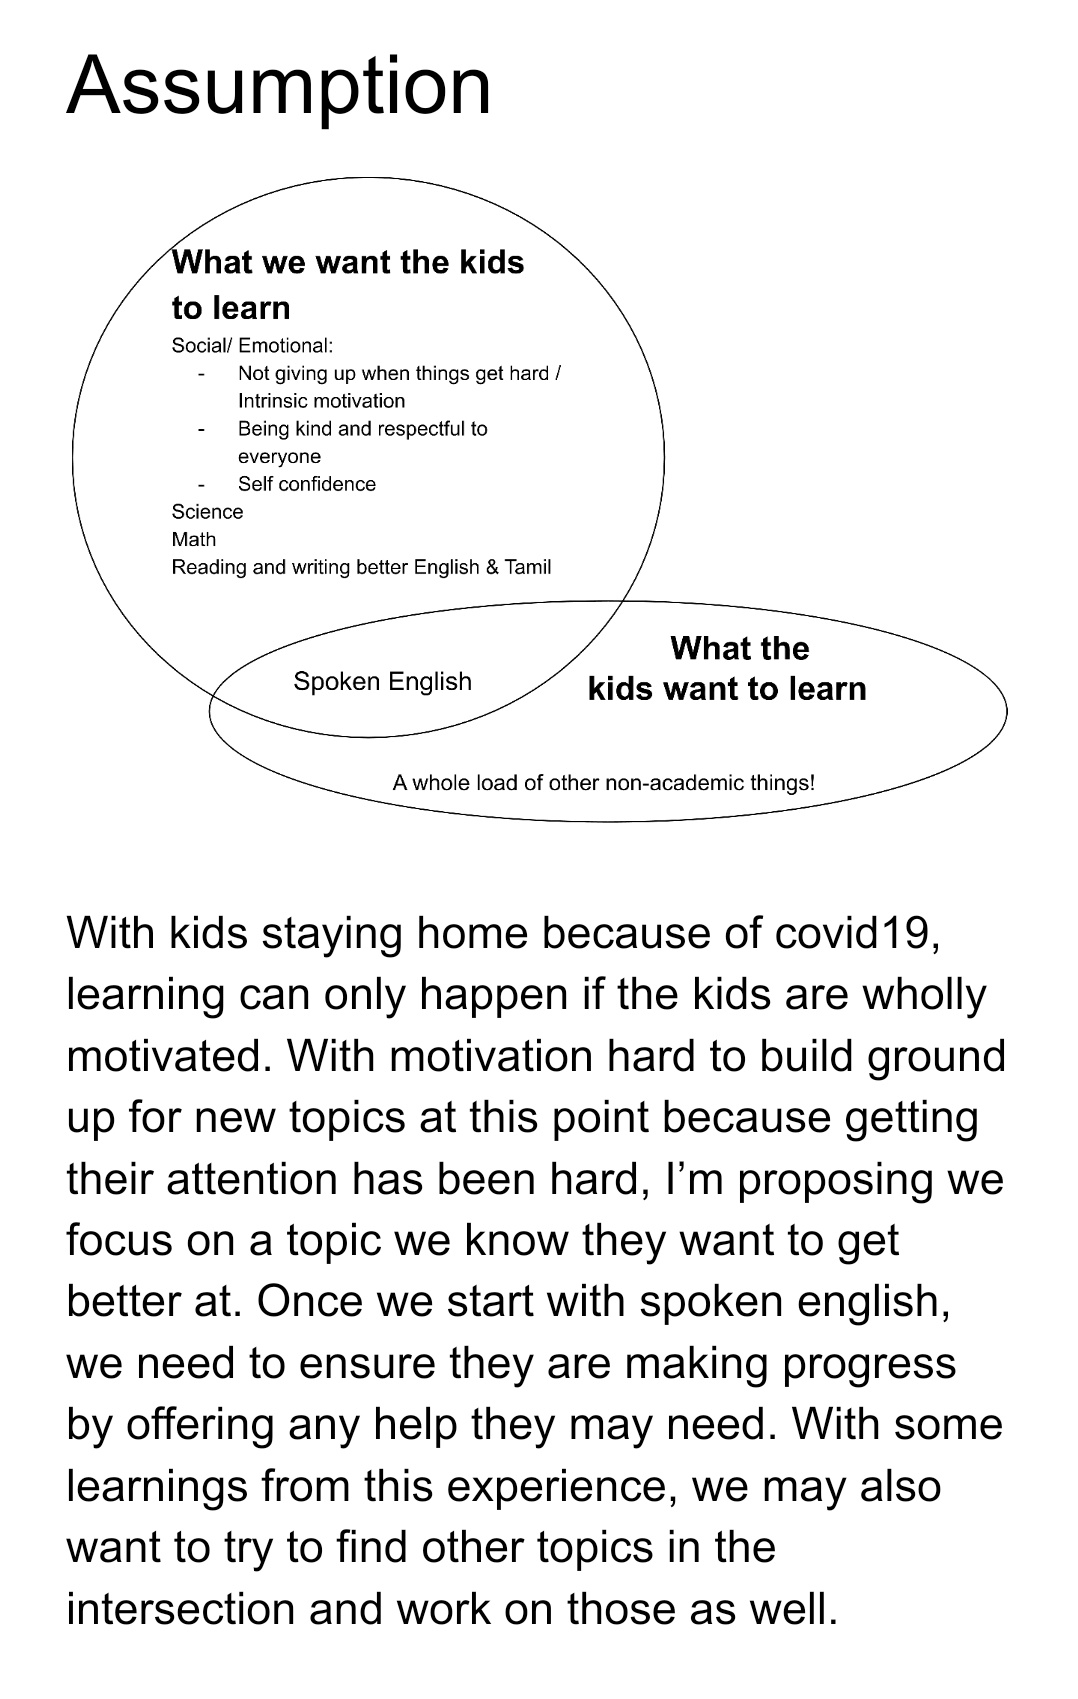 With kids staying home because of covid19, learning can only happen if the kids are wholly motivated. With motivation hard to build ground up for new topics at this point because getting their attention has been hard, I'm proposing we focus on a topic we know they want to get better at. Once we start with spoken english, we need to ensure they are making progress by offering any help they may need. With some learnings from this experience, we may also want to try to find other topics in the intersection and work on those as well.